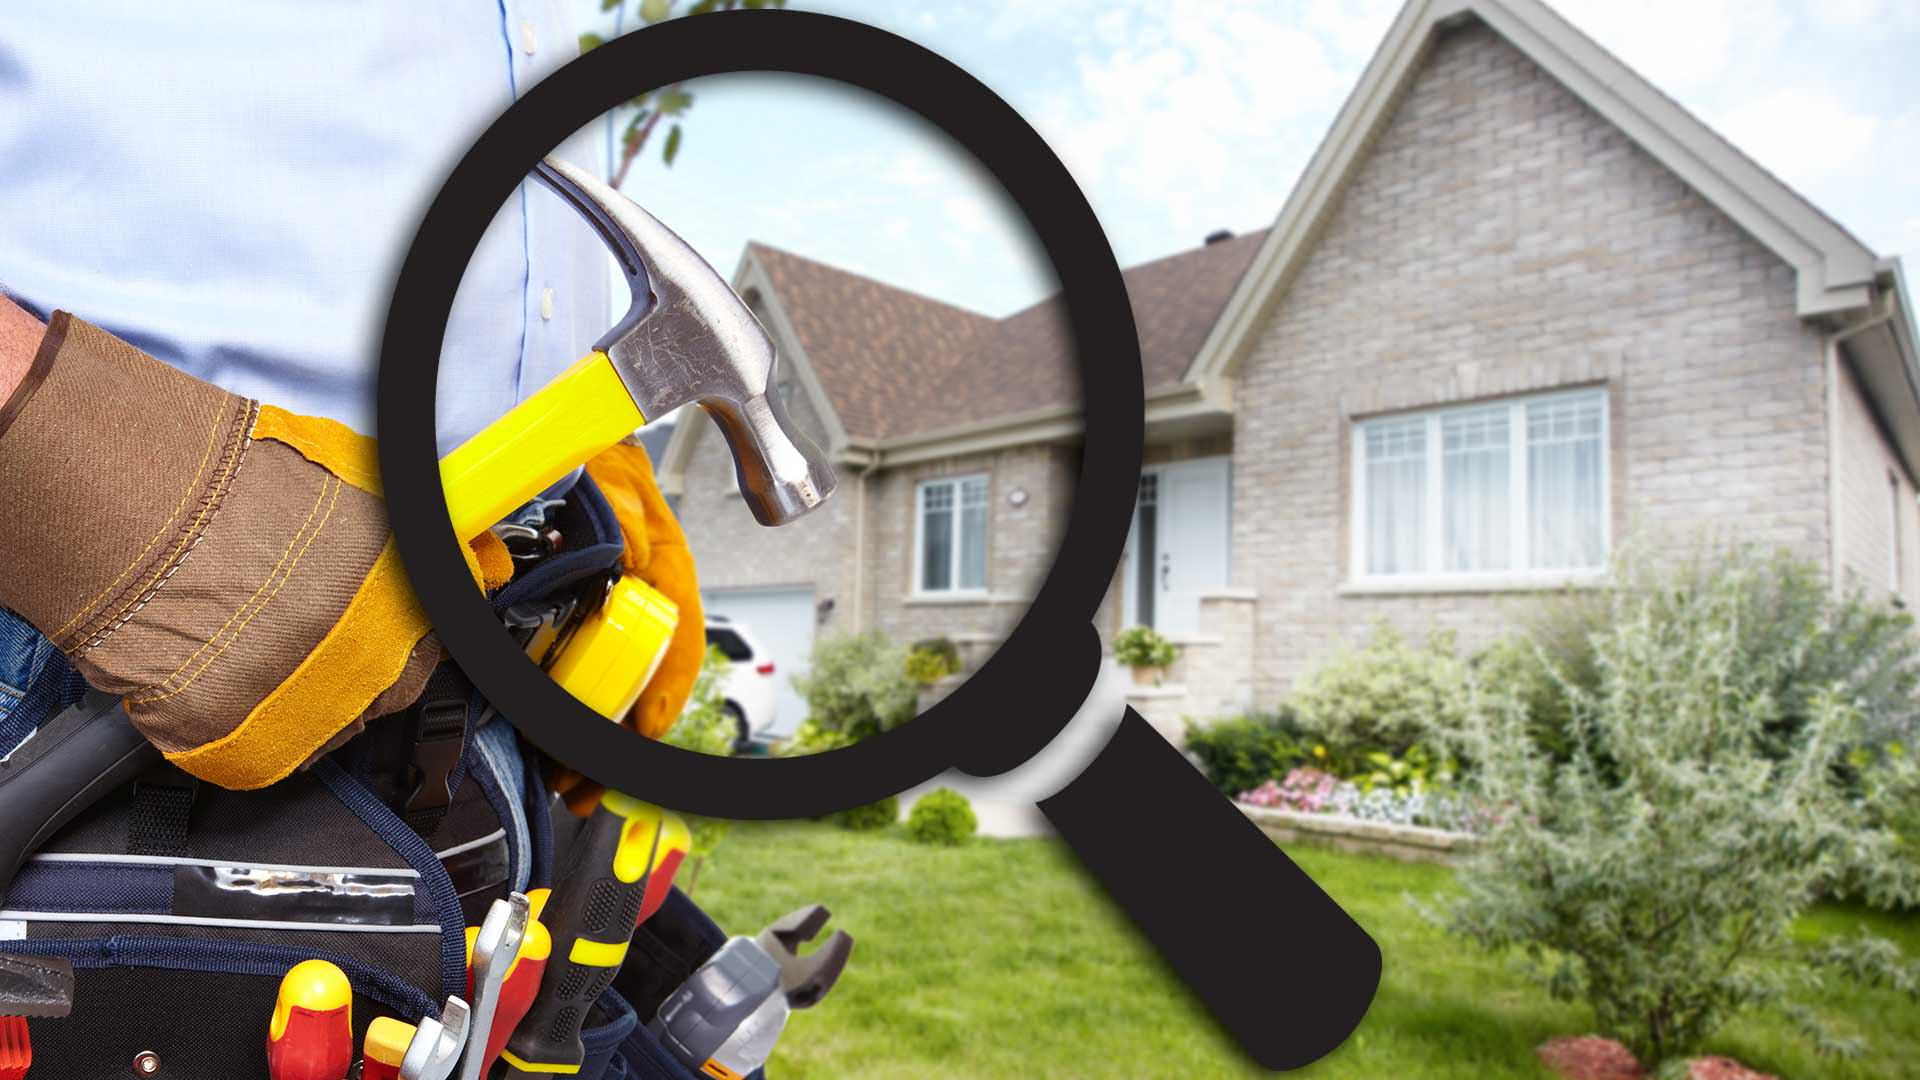 Home Service Google Searches Are Up 50% During Covid - How Smart Businesses Capitalized